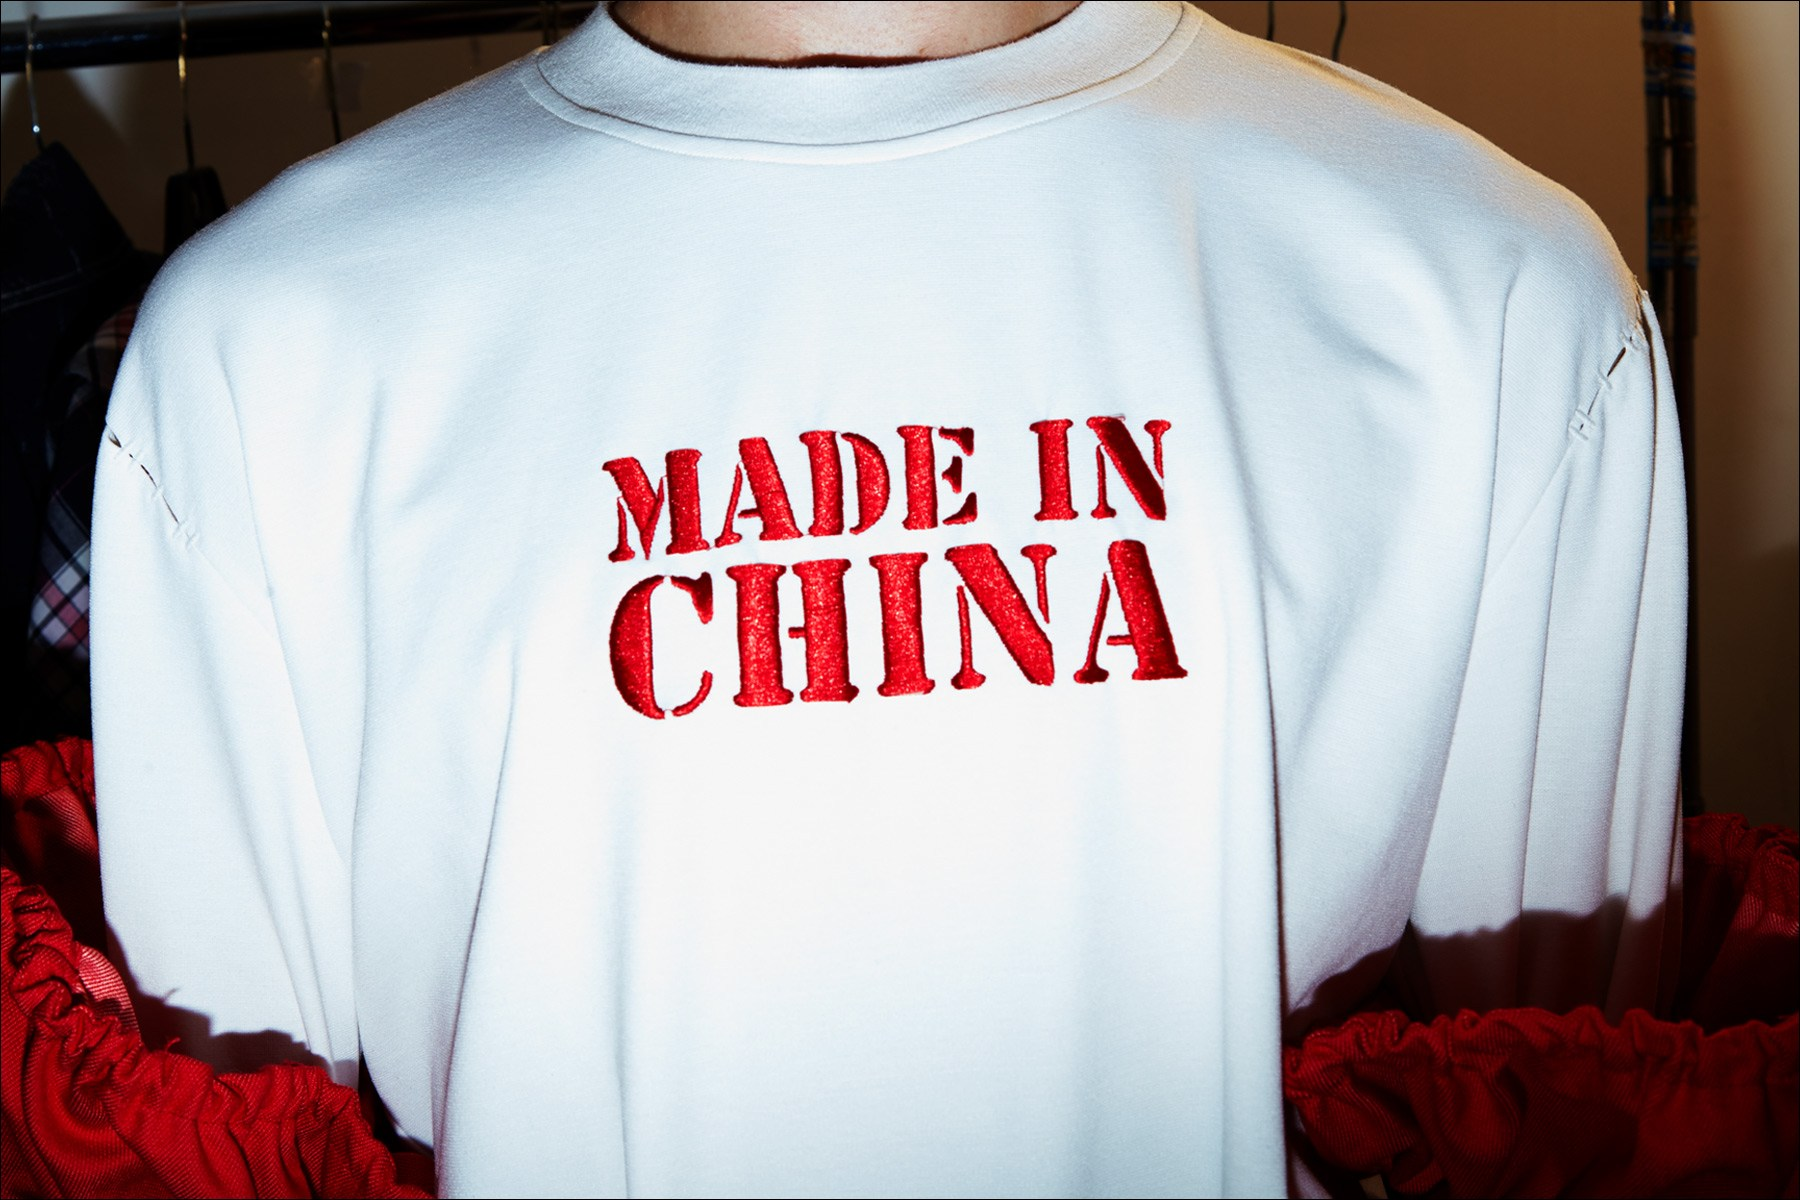 Made In China. Backstage at Feng Chen Wang menswear show. Photographed by Alexander Thompson for Ponyboy magazine NY.